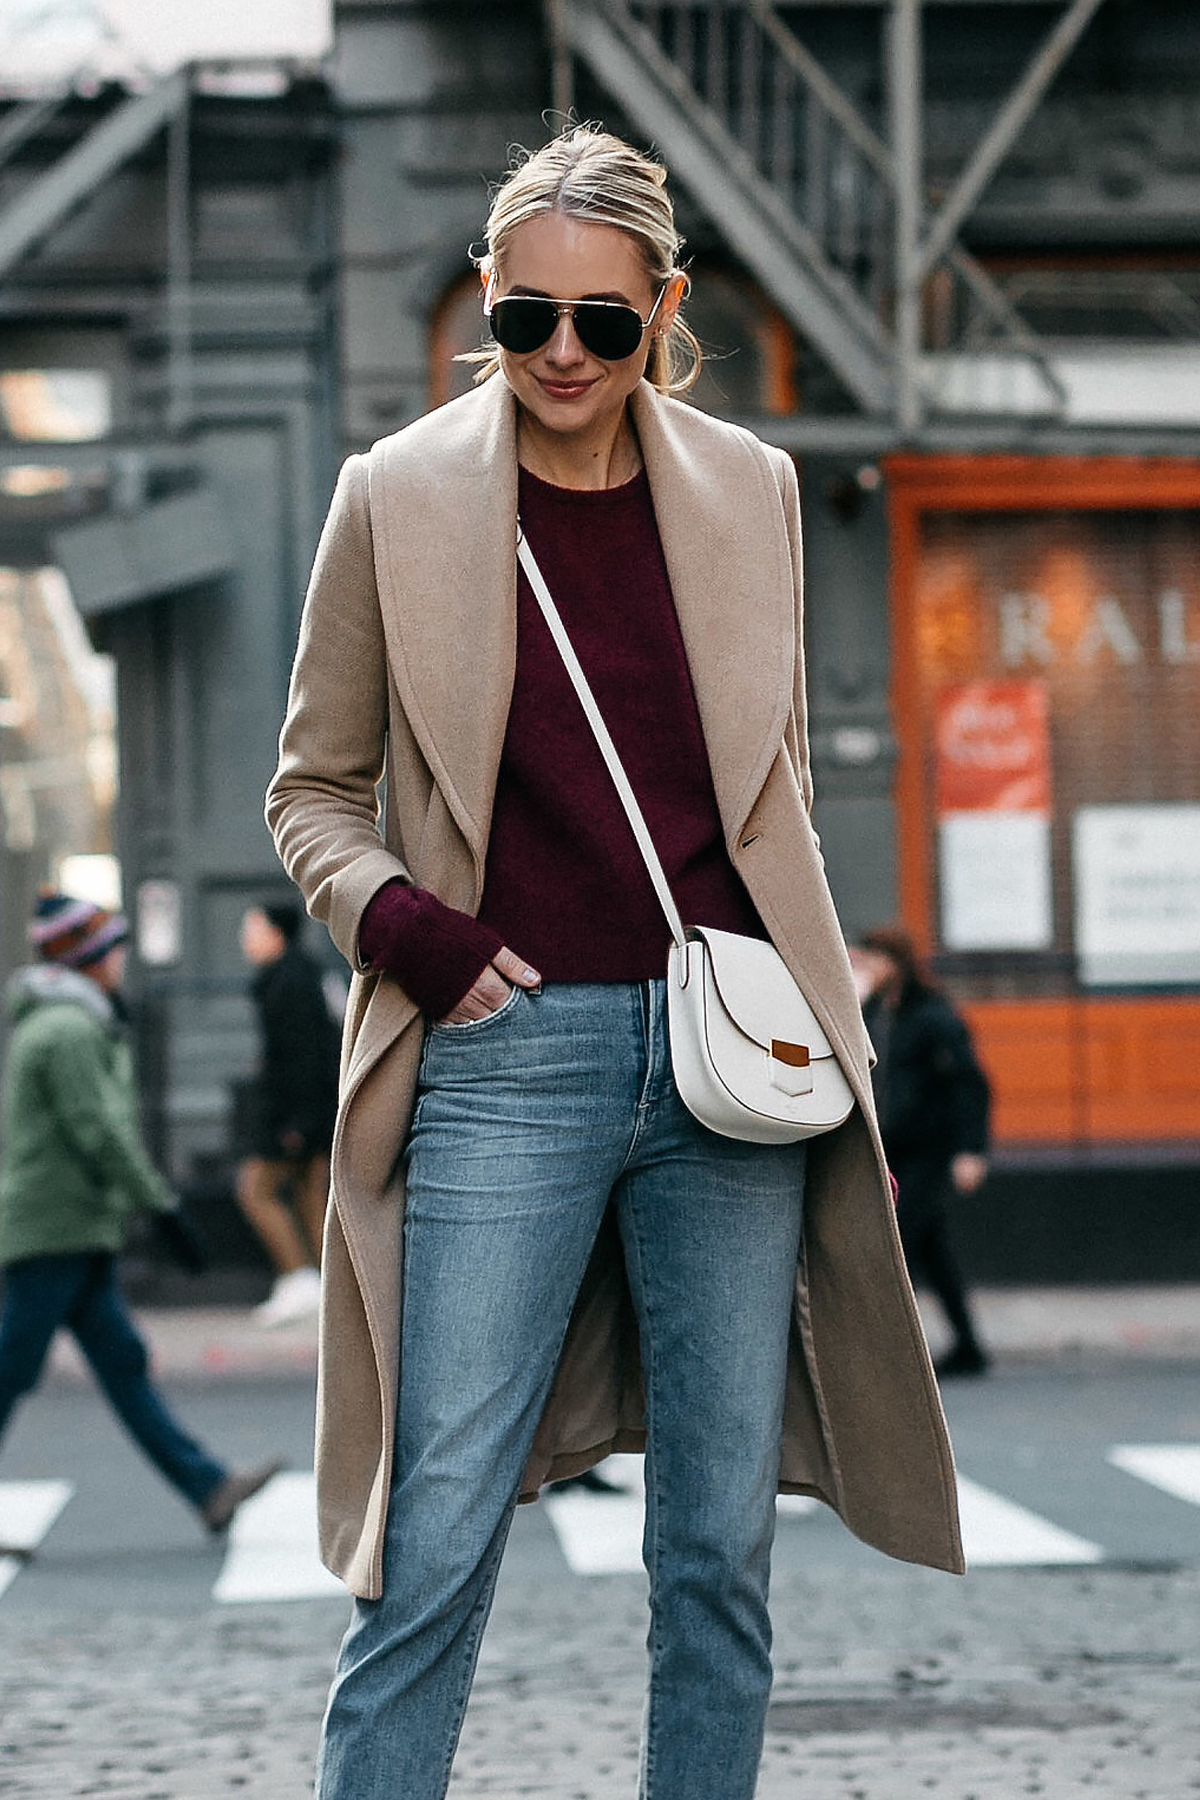 Blonde Woman Wearing Club Monaco Camel Coat Burgundy Sweater Denim Jeans Celine White Trotteur Handbag Fashion Jackson Dallas Blogger Fashion Blogger Street Style New York Fashion Week NYFW